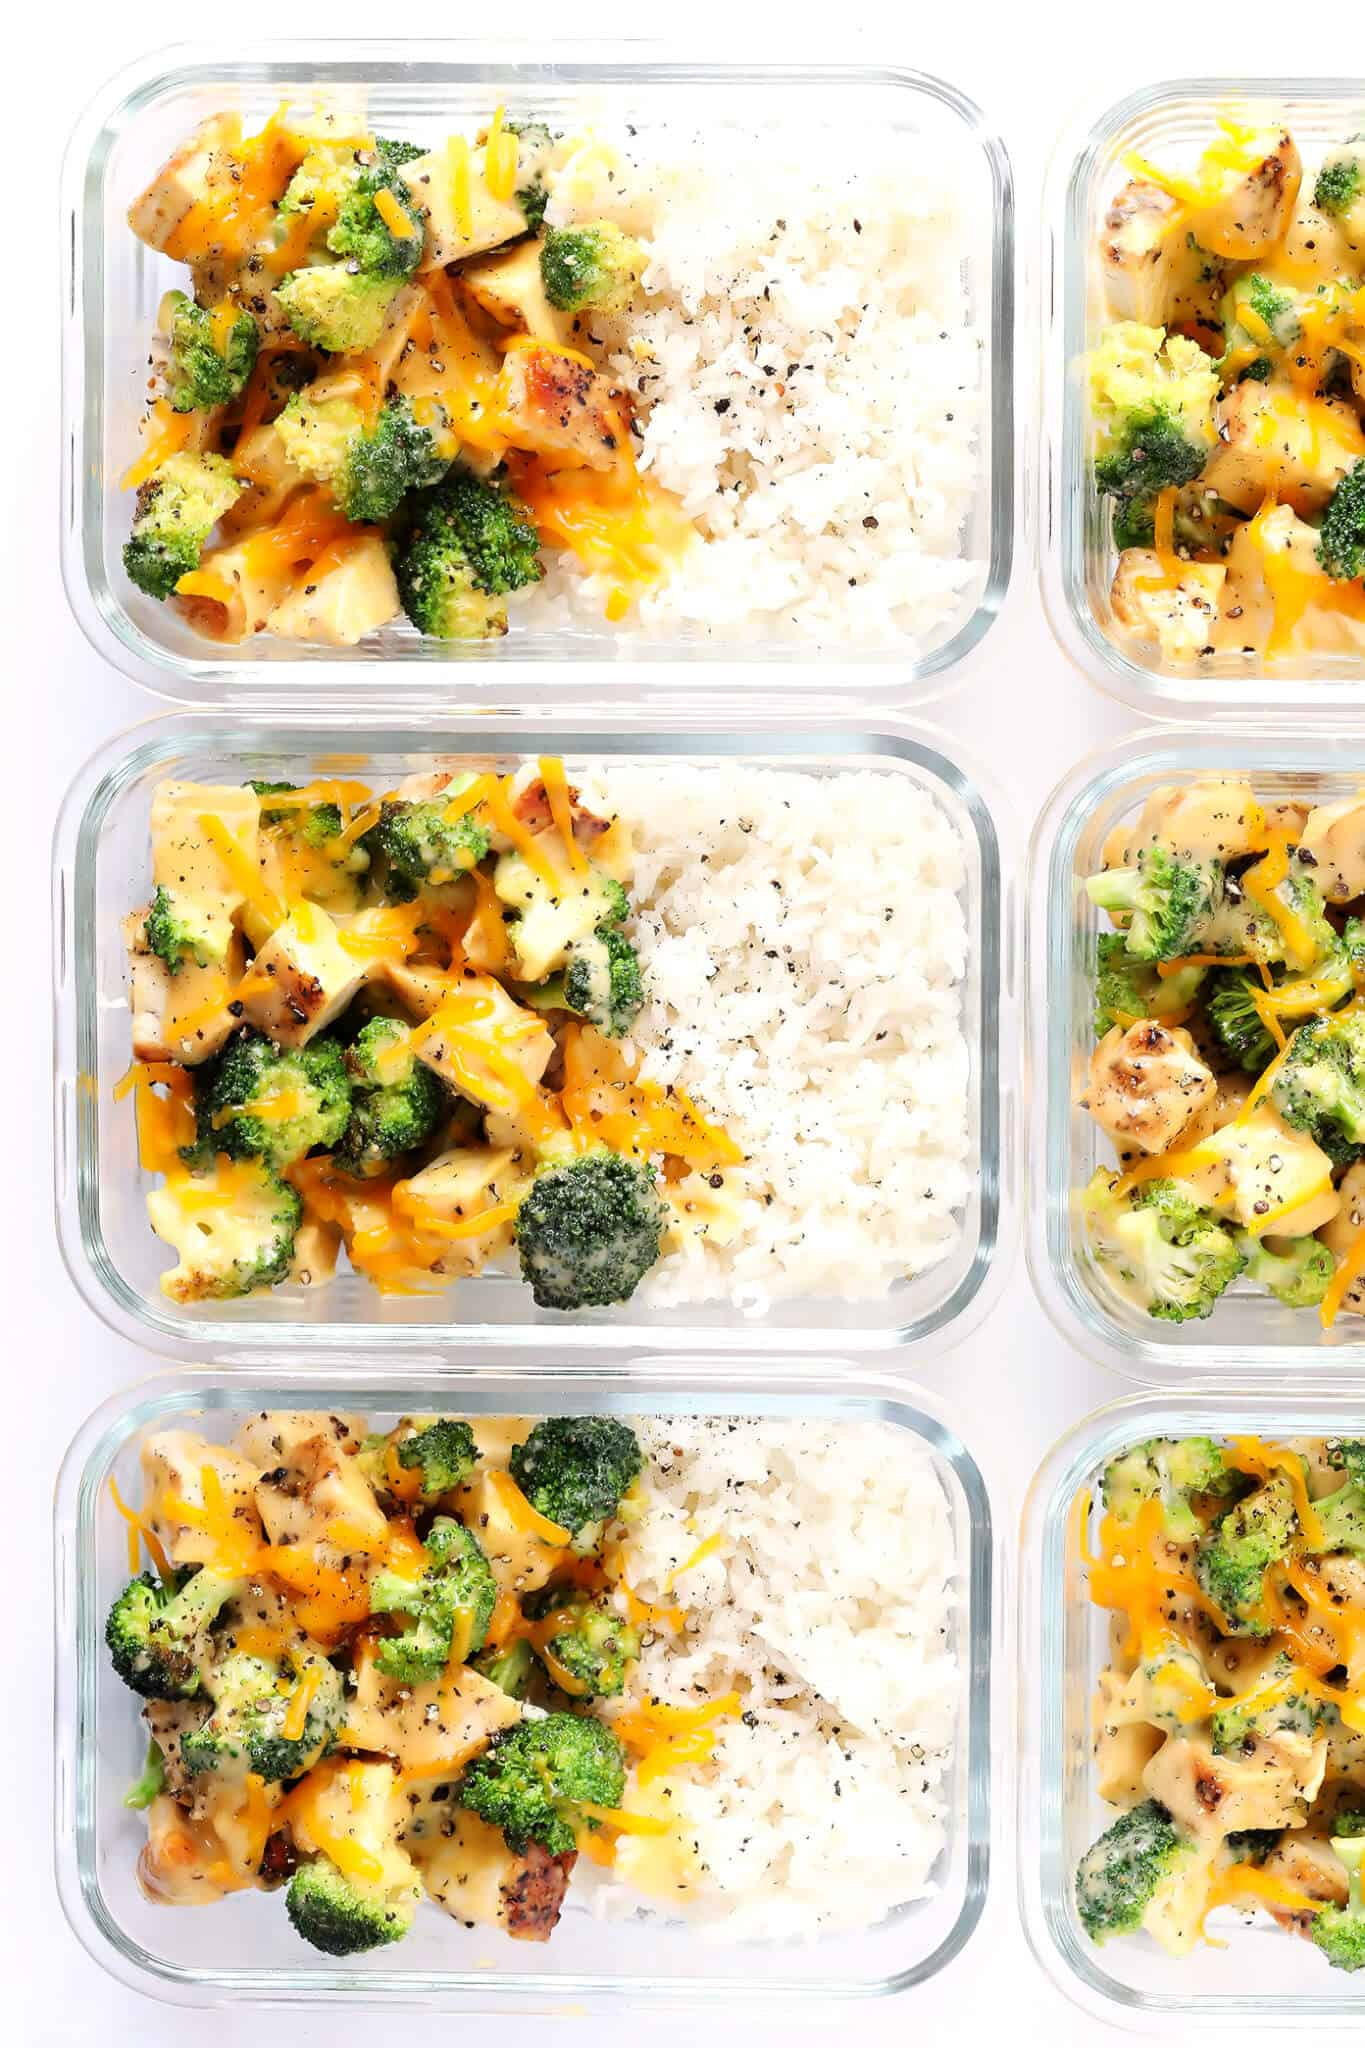 Chicken Breast Meal Preps That Are Not Boring